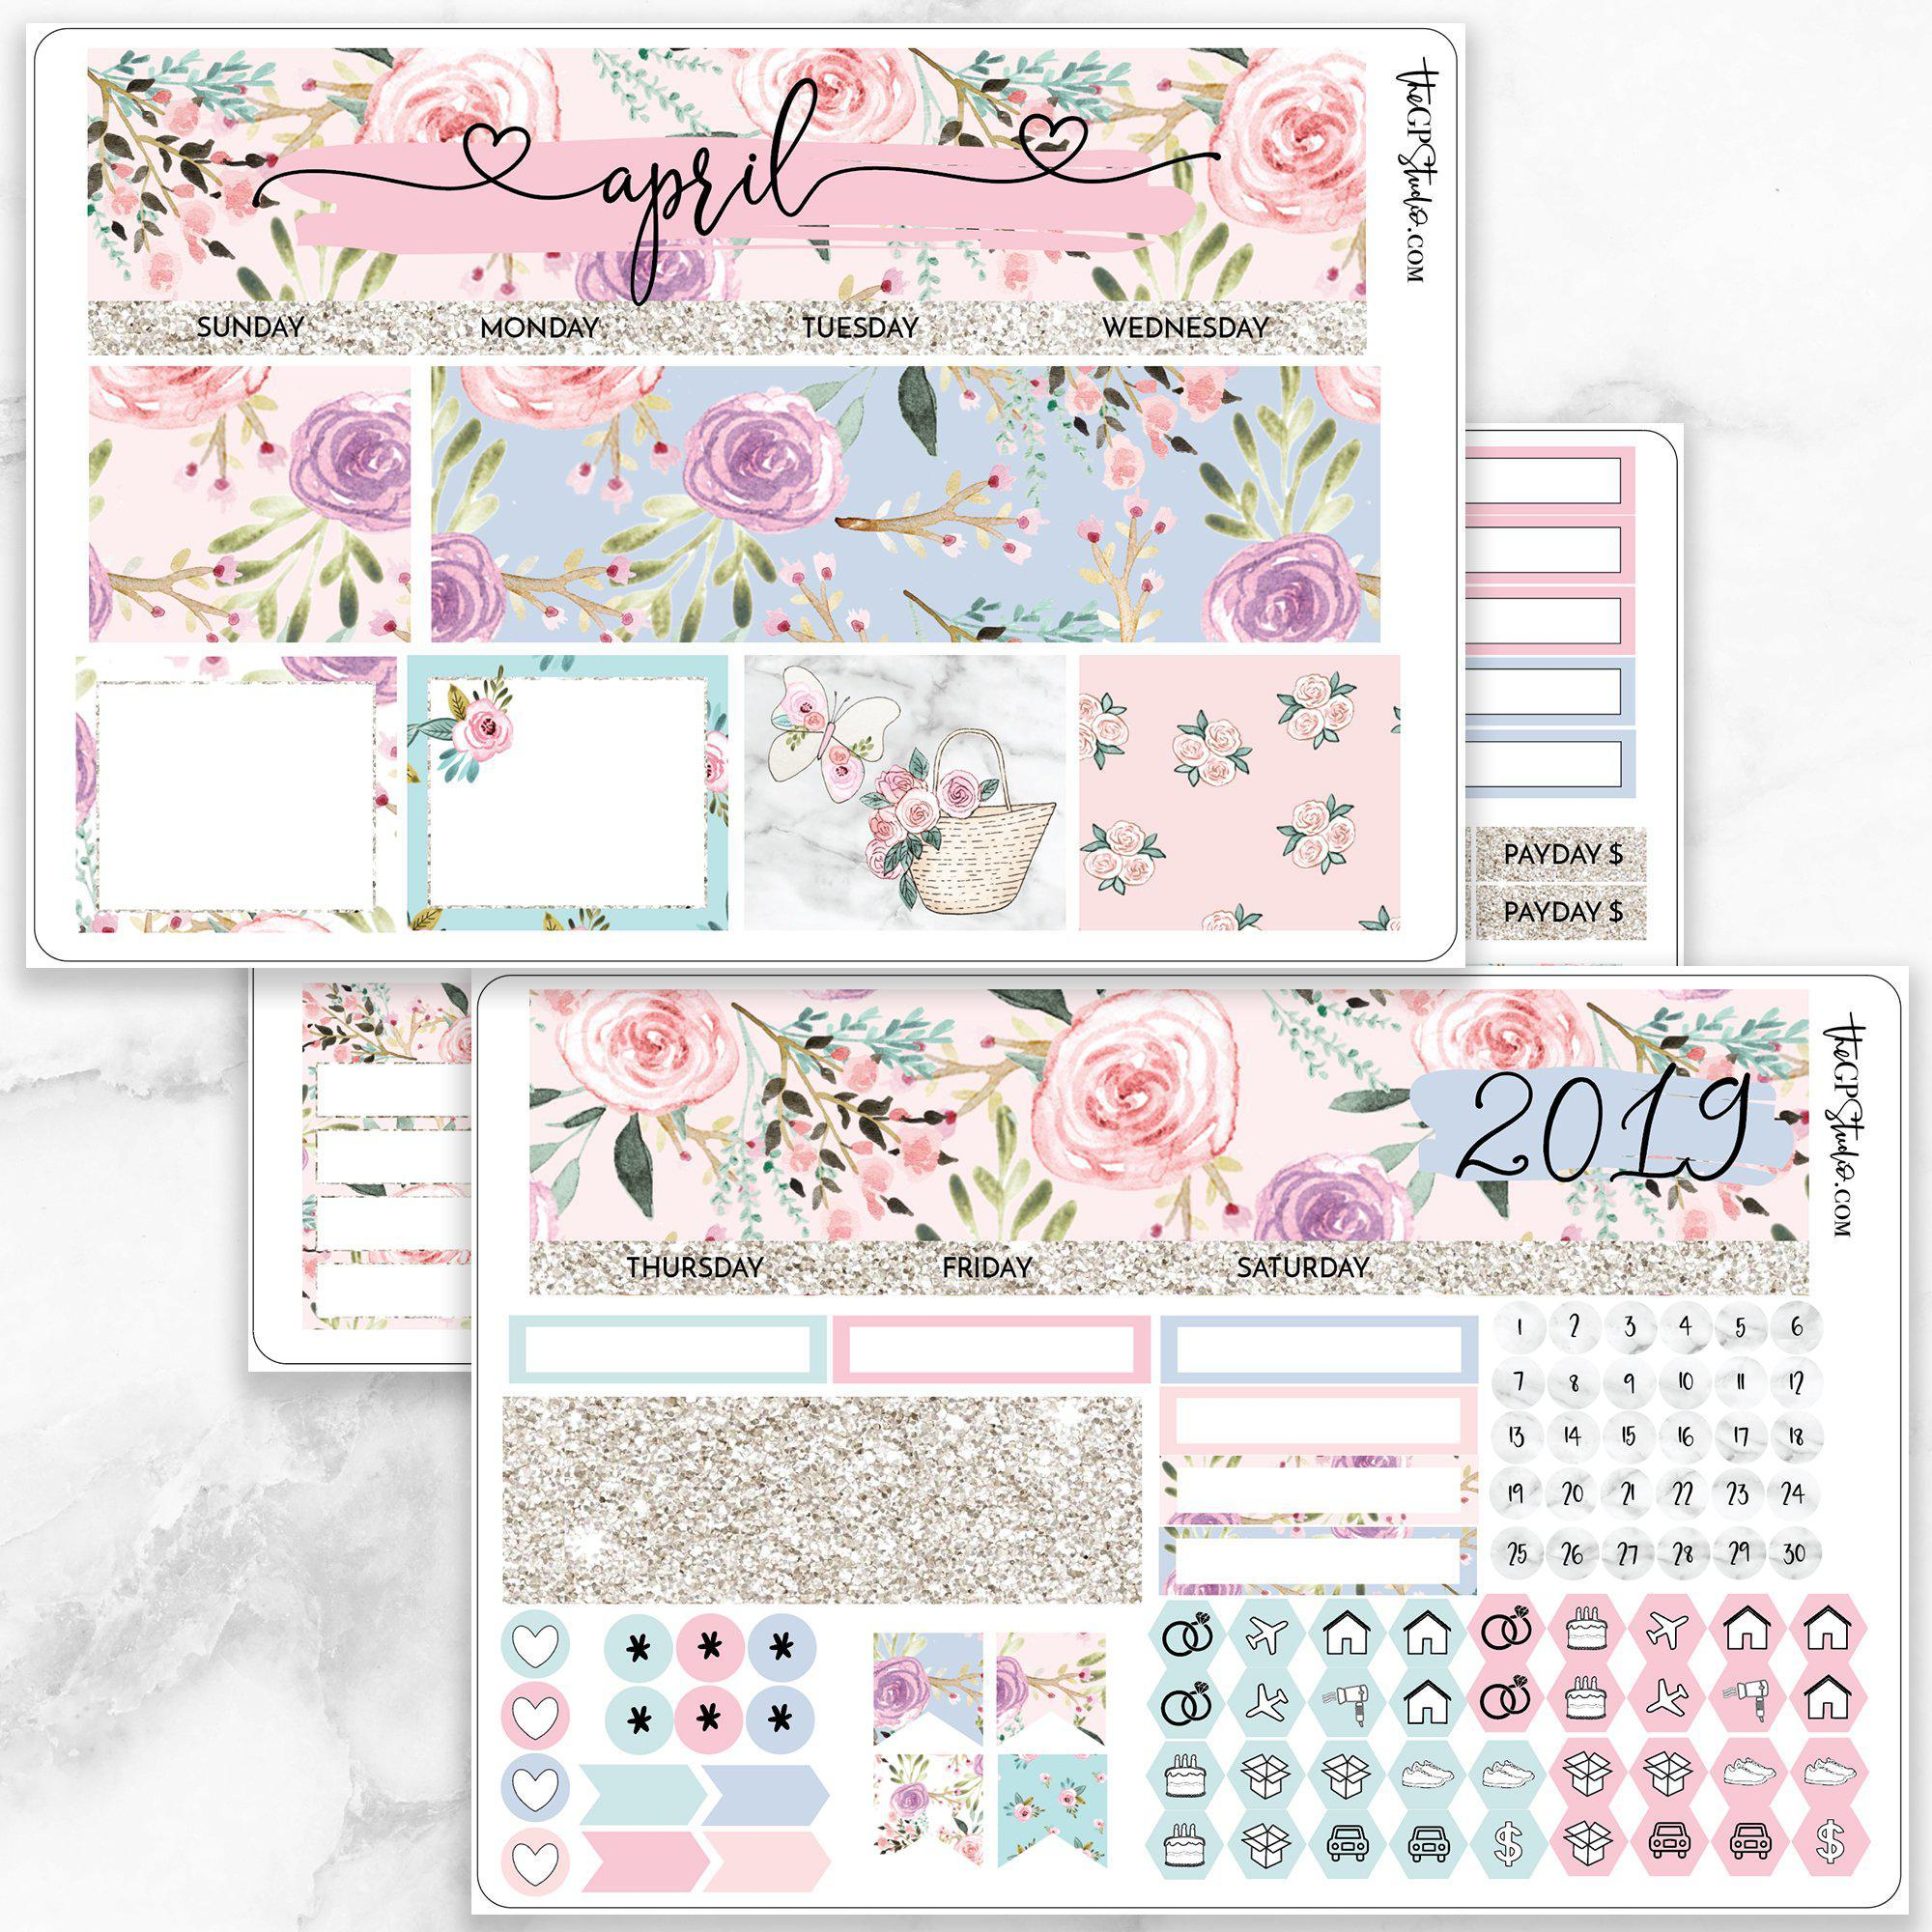 APRIL Monthly View Sticker Kit Erin Condren Size-The GP Studio